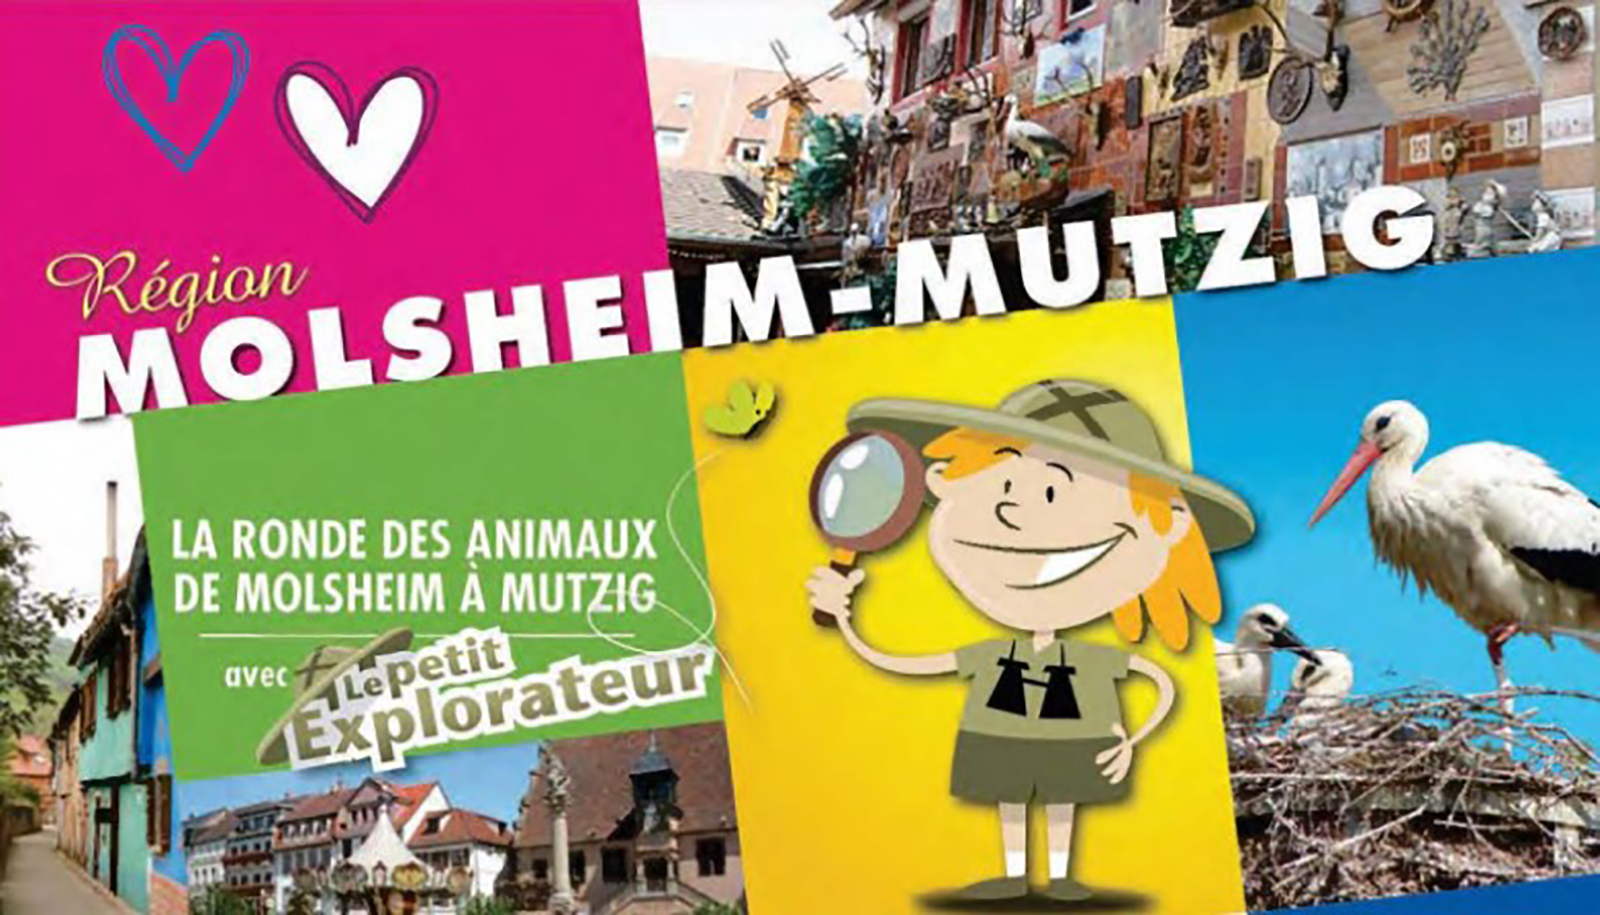 https://apps.tourisme-alsace.info/photos/molsheim/photos/218006553_1.jpg